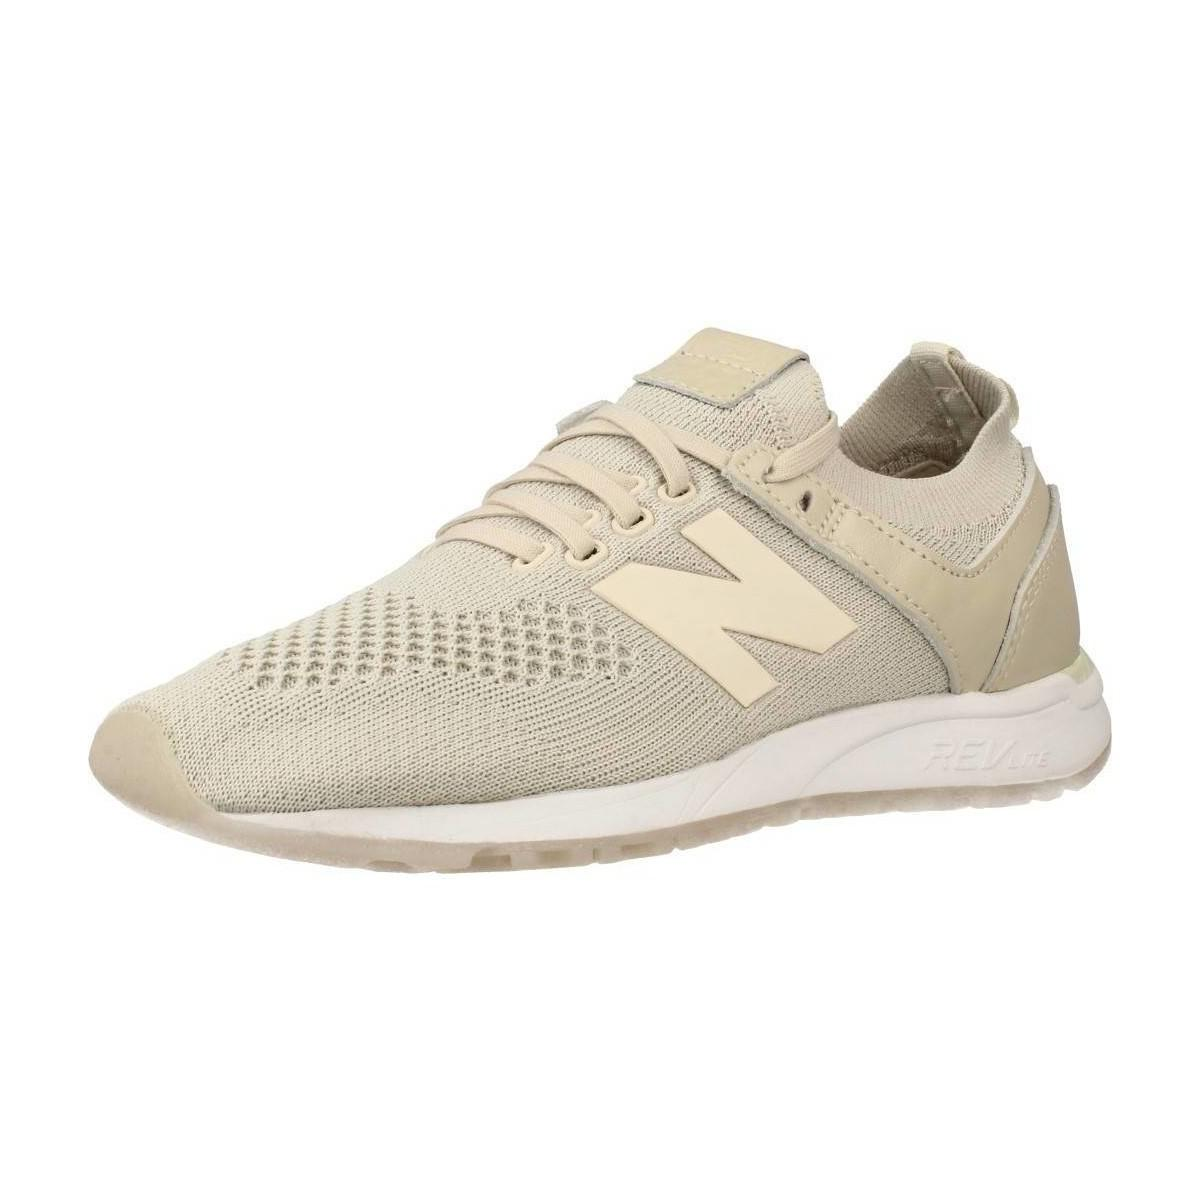 Clearance Amazon Clearance Marketable New Balance WRL247 SV women's Shoes (Trainers) in Discount Sast vCQIfMe6q